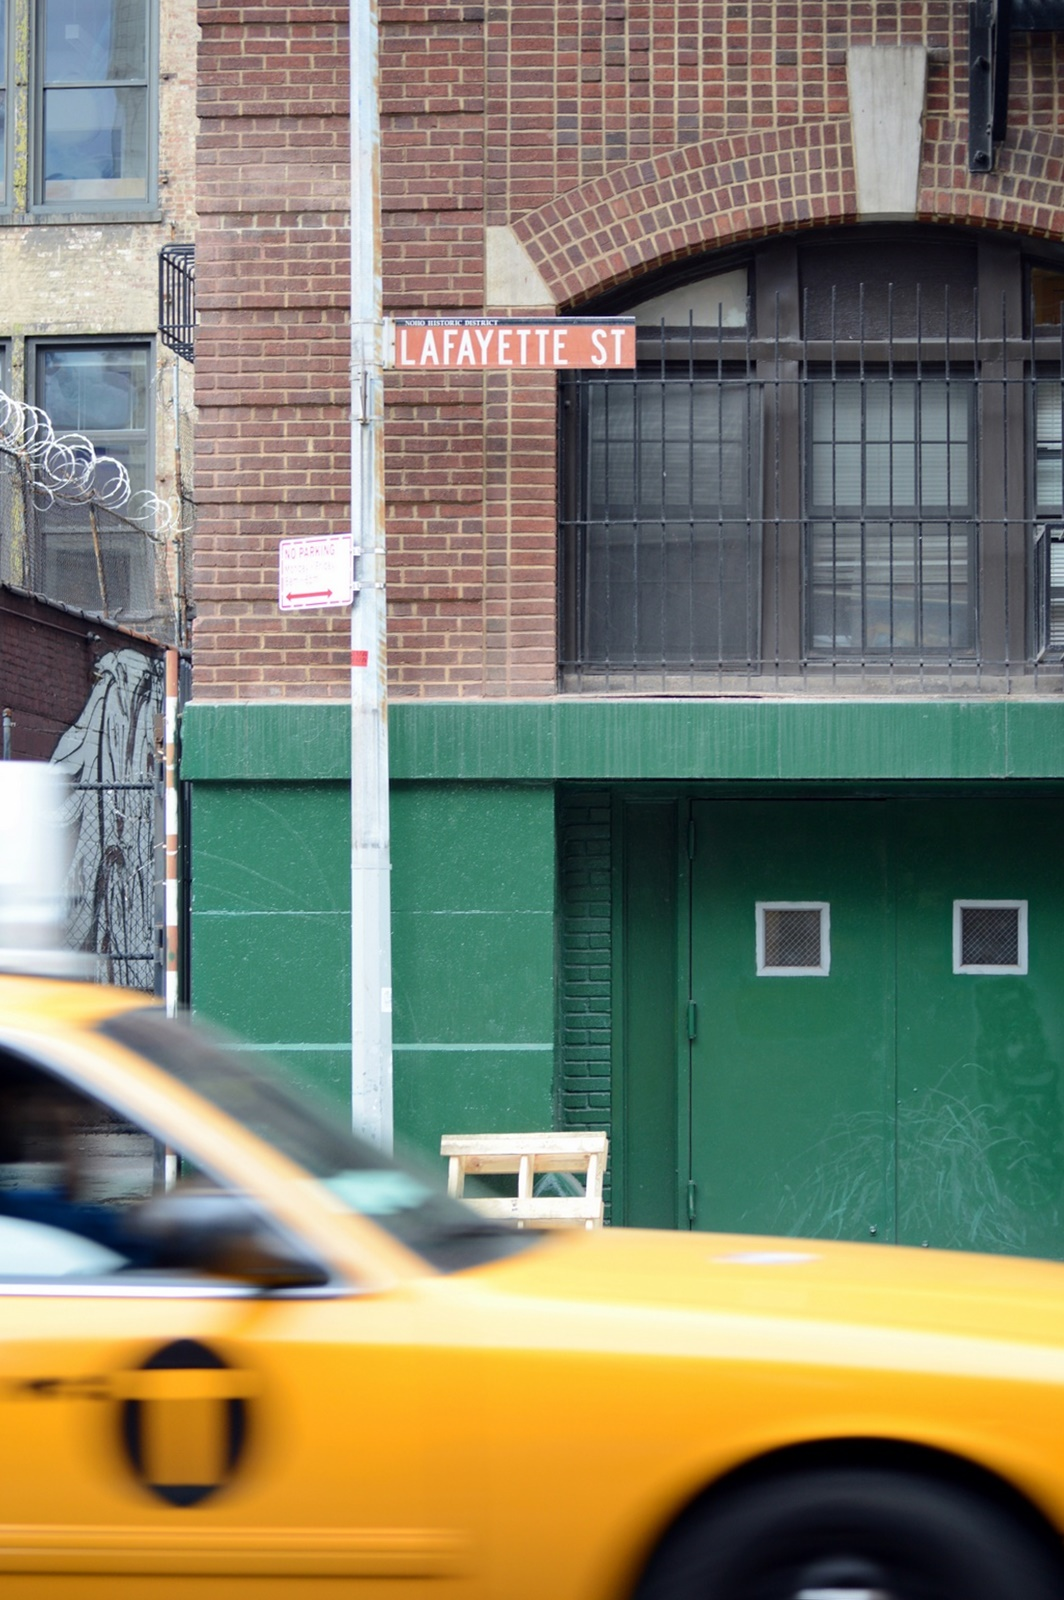 Streets_Of_New_York